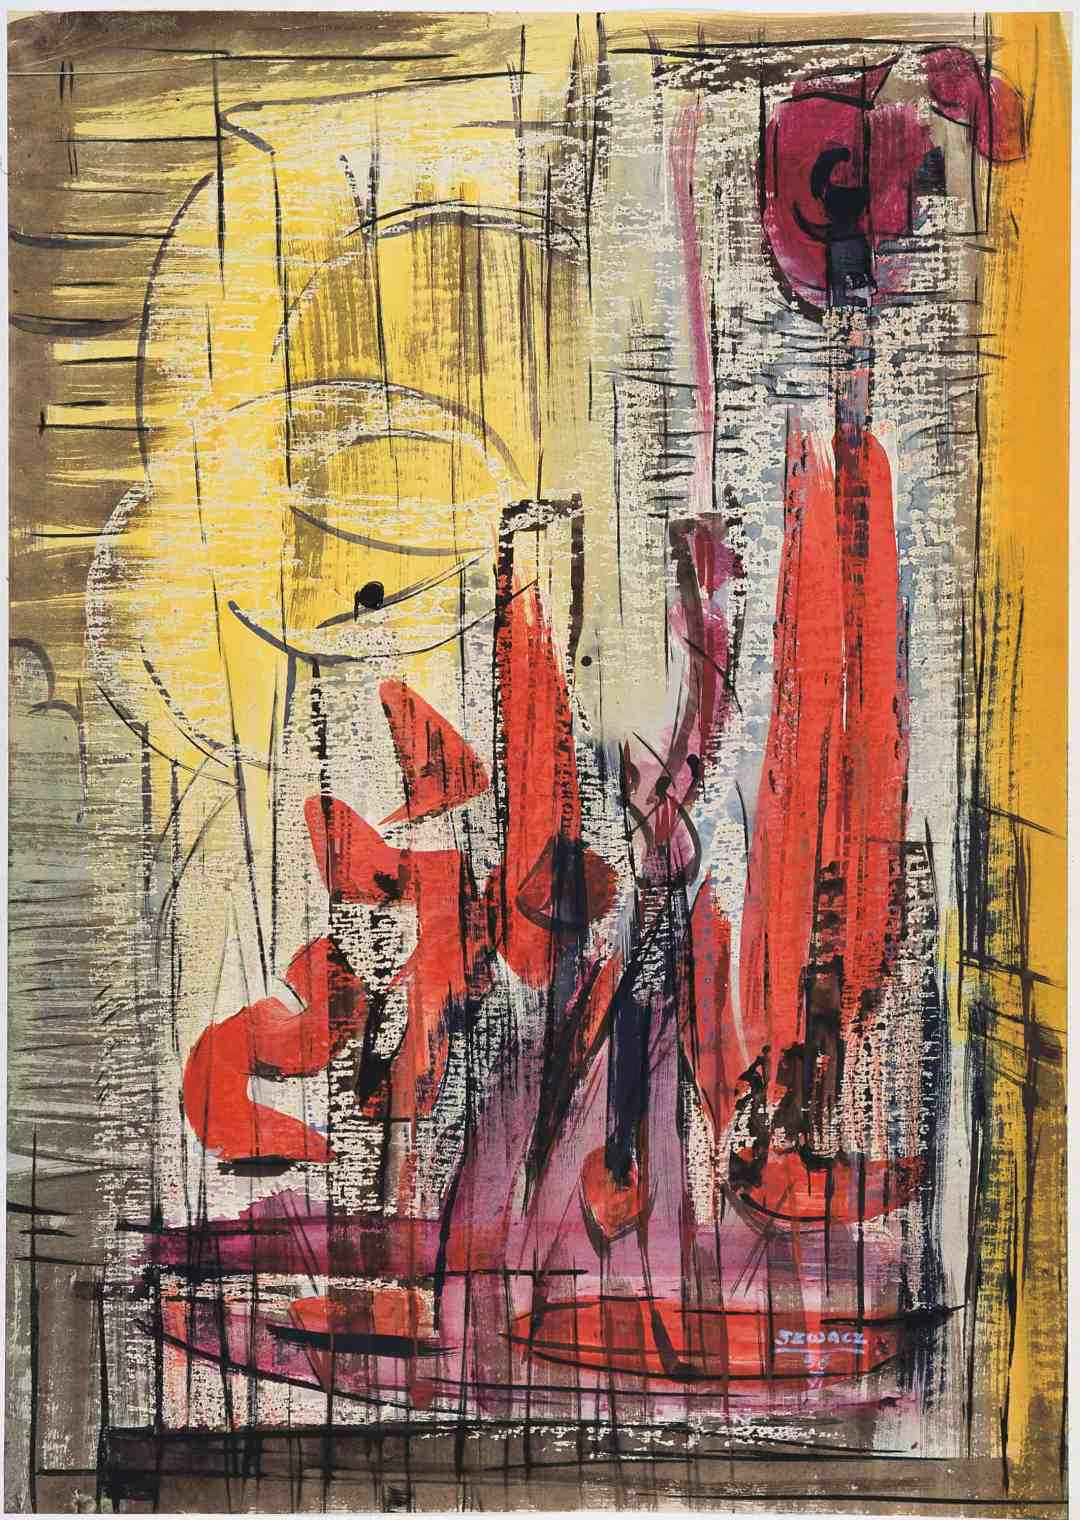 Bogusław Szwacz, Composition, 1956, ink, watercolour, tempera, pastel, paper, photograph by Zygmunt Gajewski .